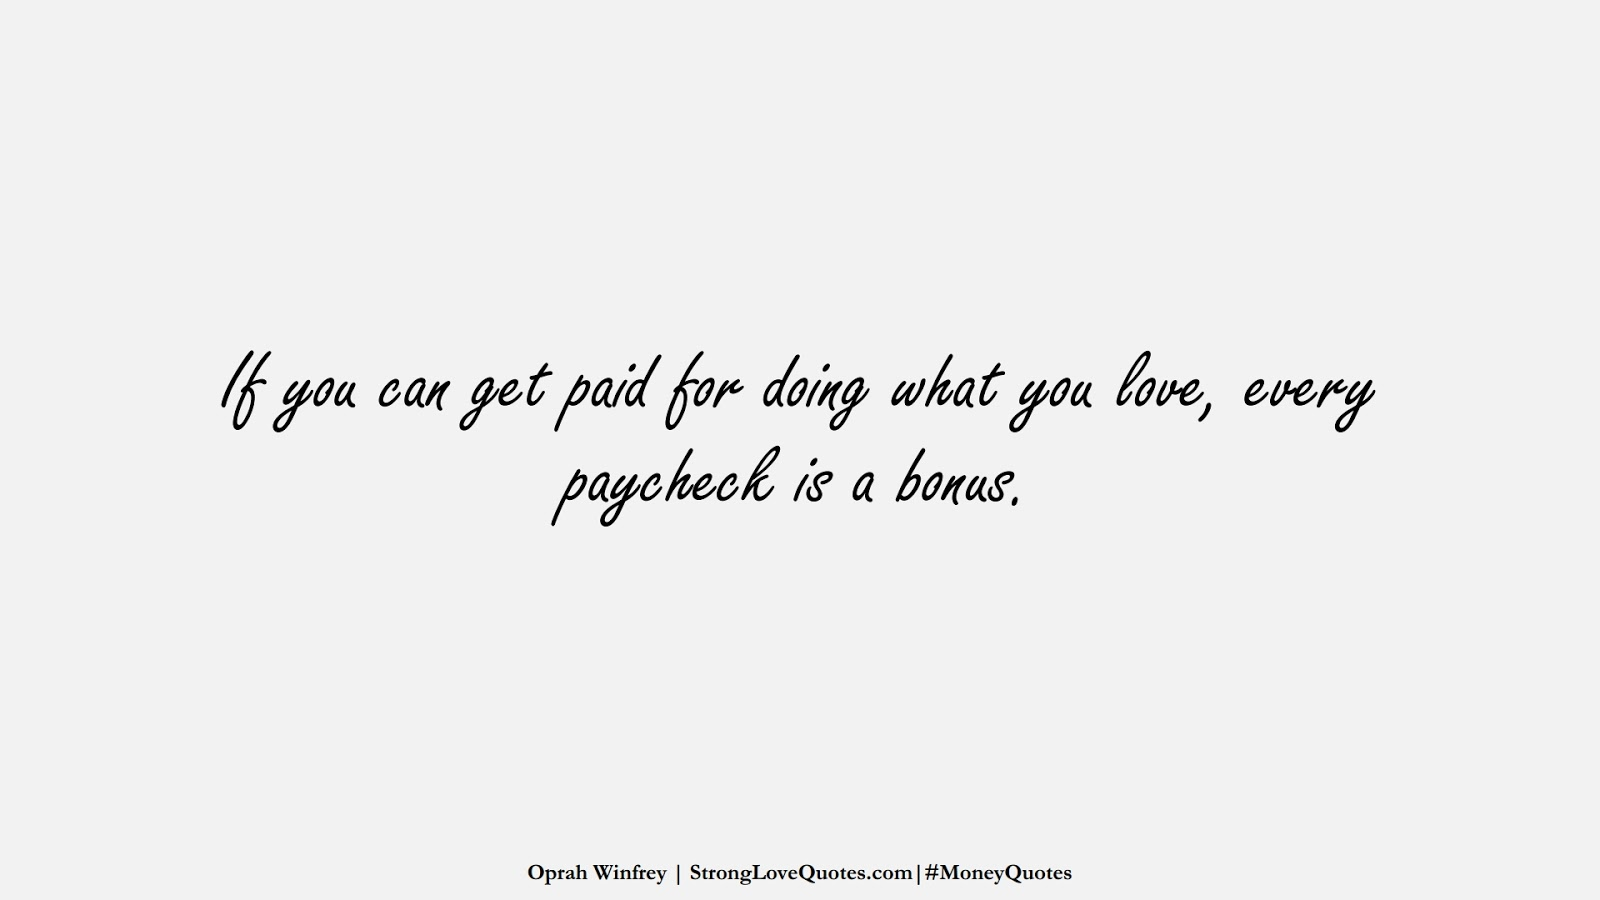 If you can get paid for doing what you love, every paycheck is a bonus. (Oprah Winfrey);  #MoneyQuotes